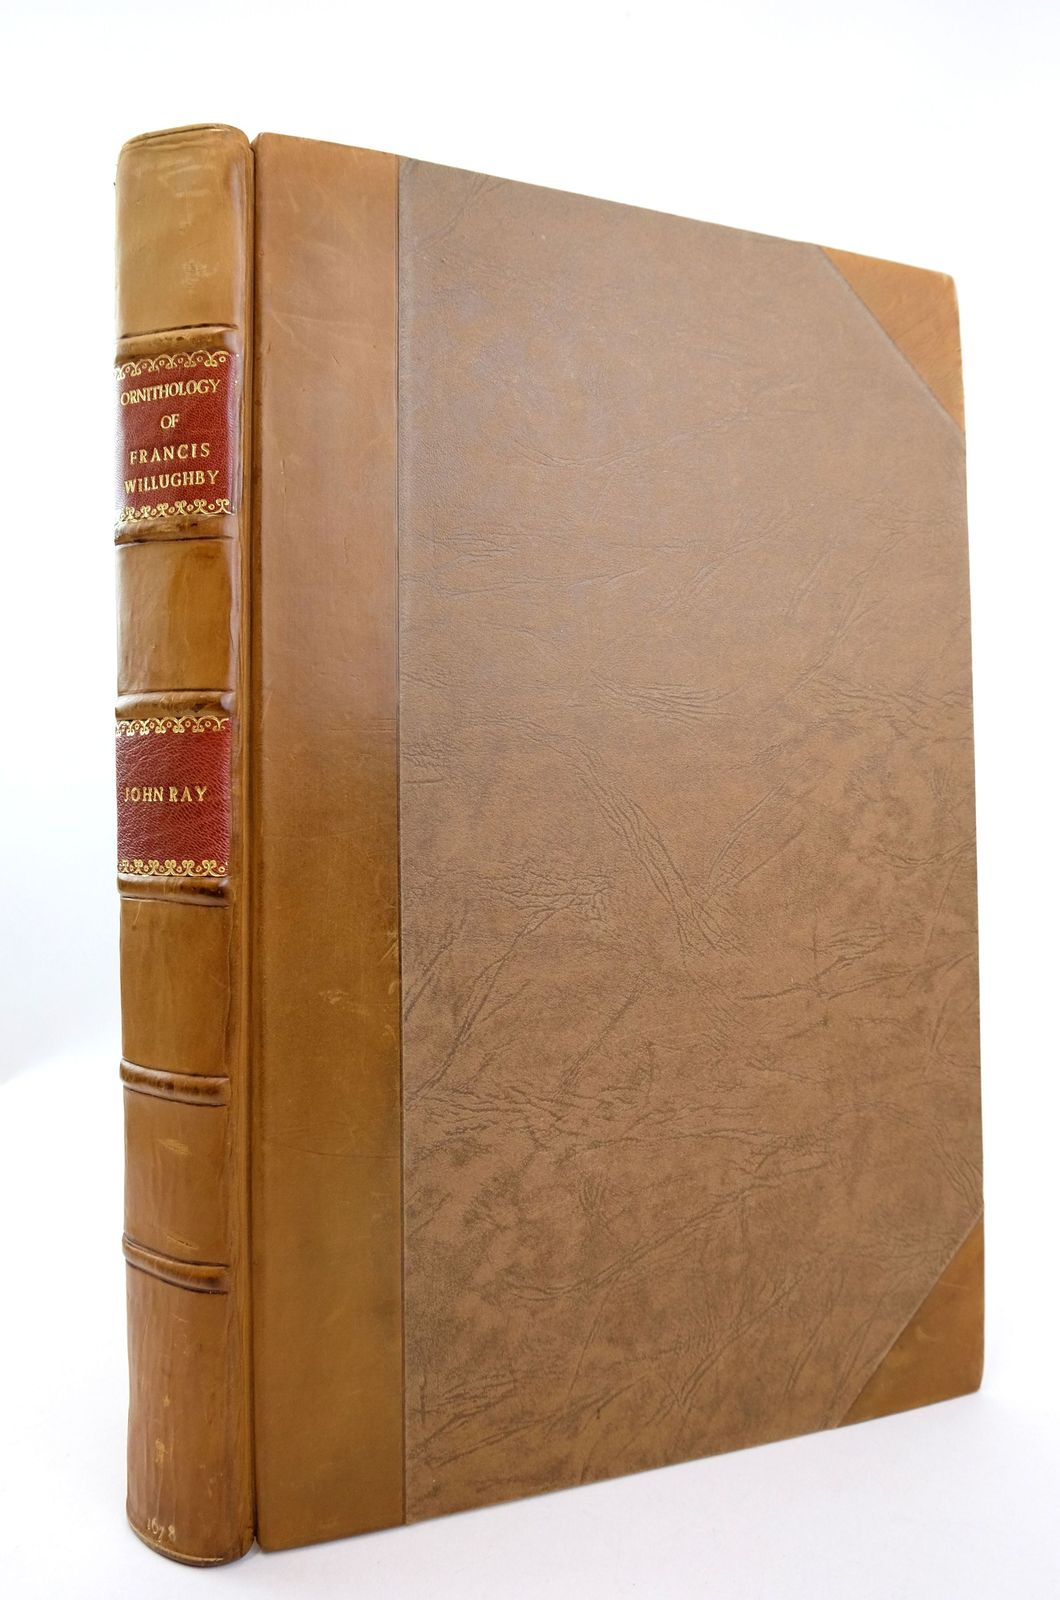 Photo of THE ORNITHOLOGY OF FRANCIS WILLUGHBY OF MIDDLETON IN THE COUNTY OF WARWICK written by Ray, John published by John Martyn (STOCK CODE: 1819111)  for sale by Stella & Rose's Books